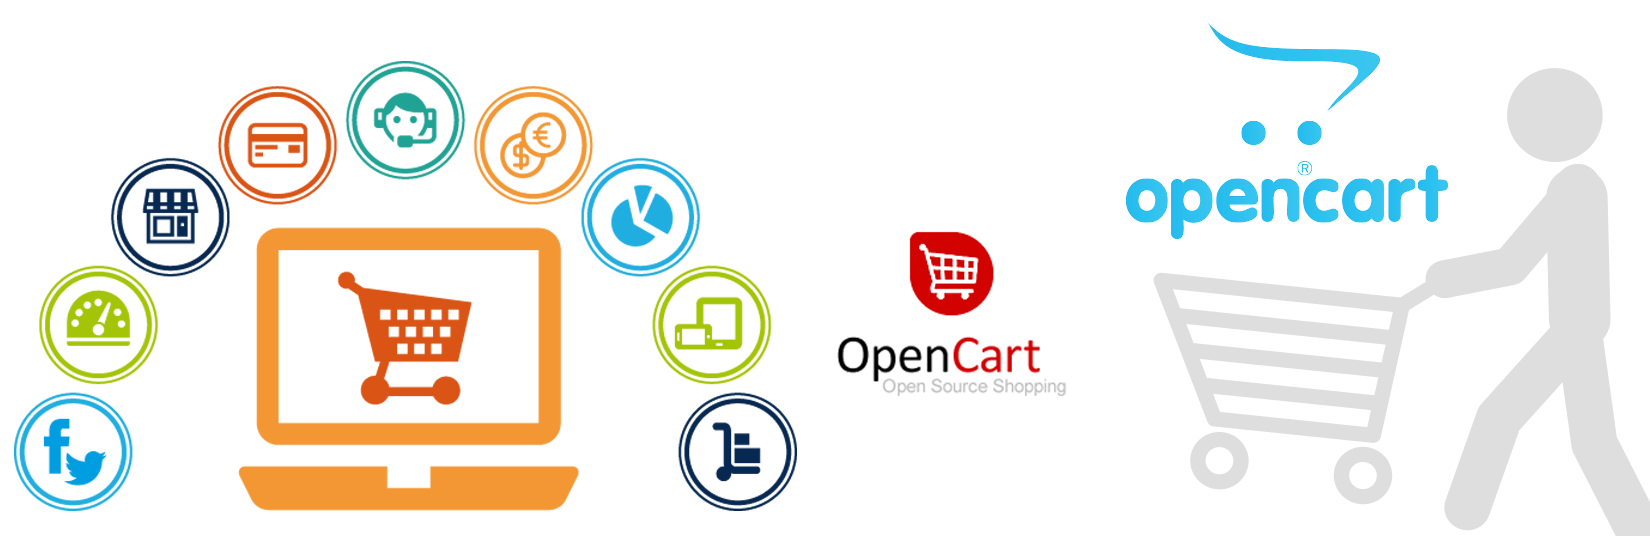 opencart-web-development